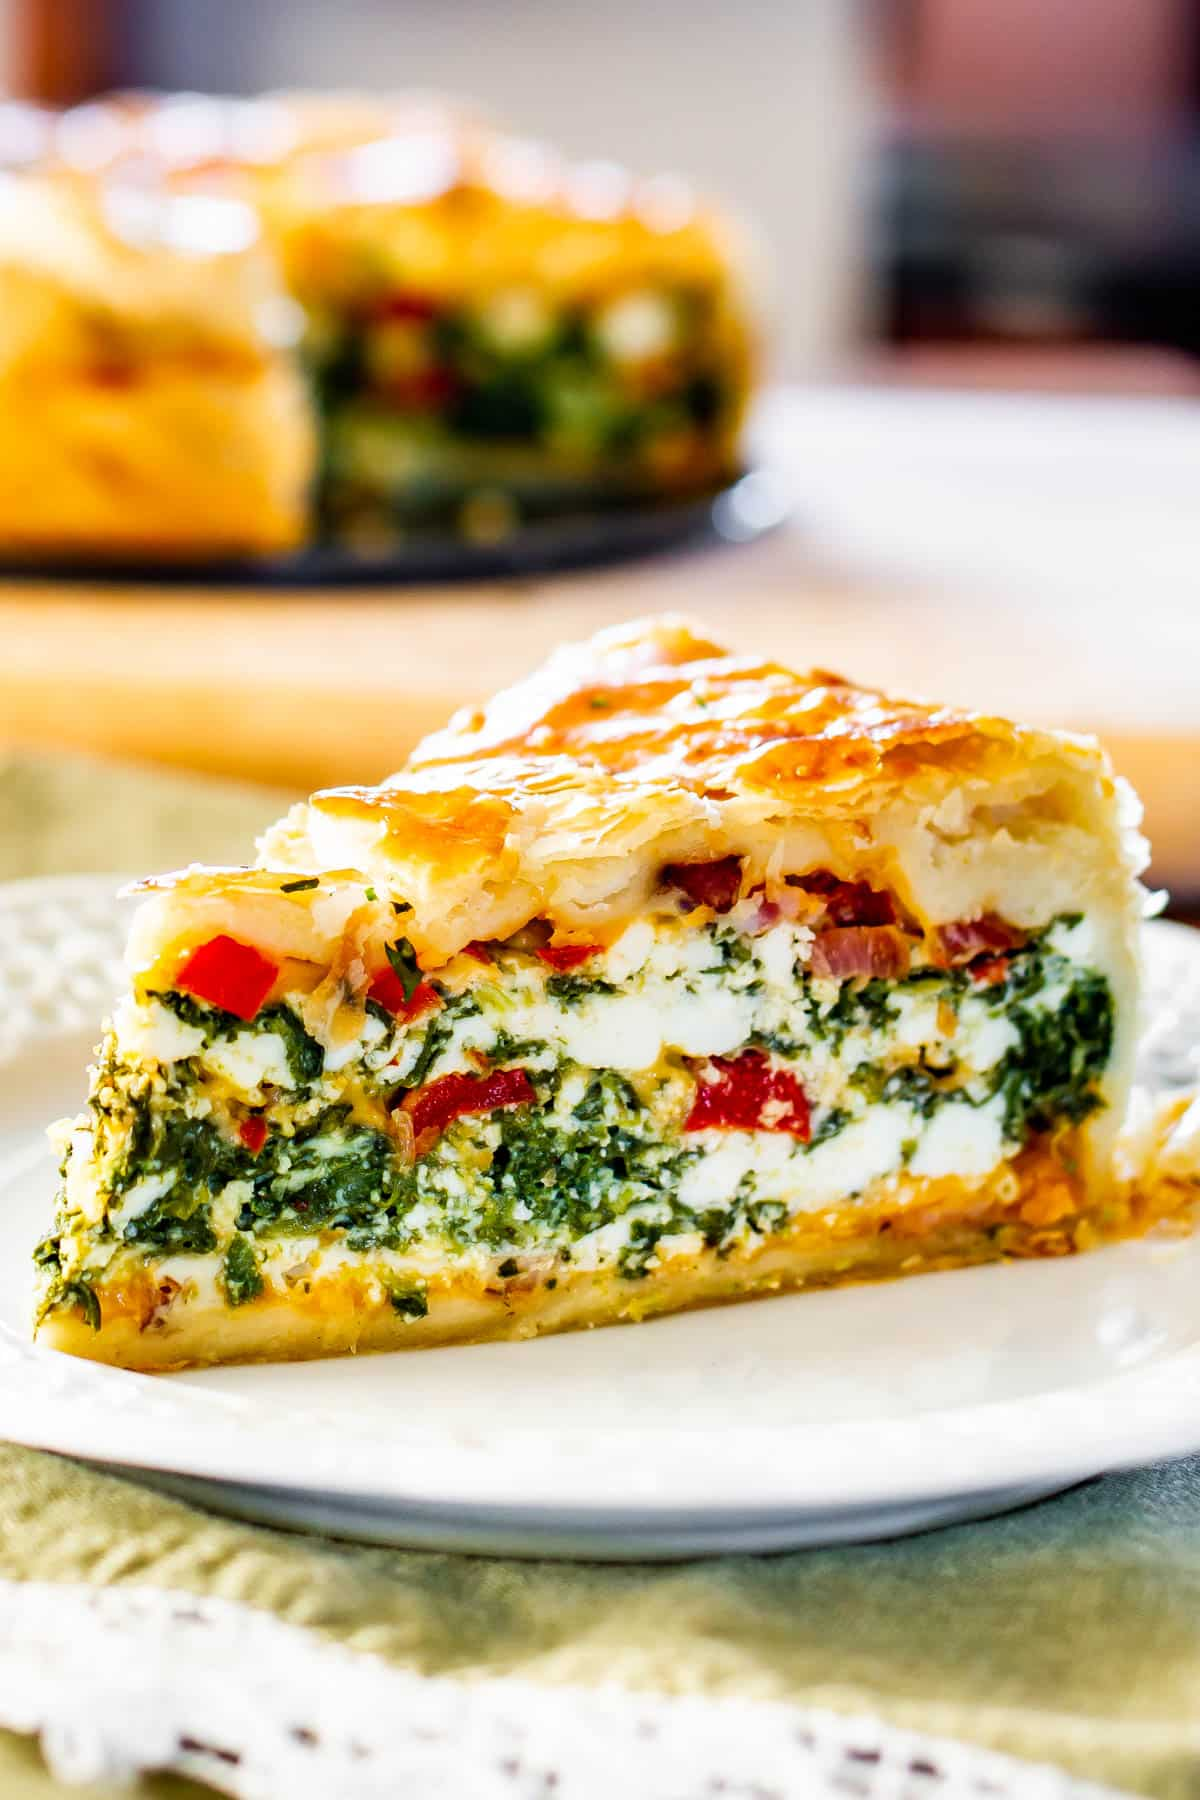 Spinach Ricotta Brunch Bake slice on a white plate